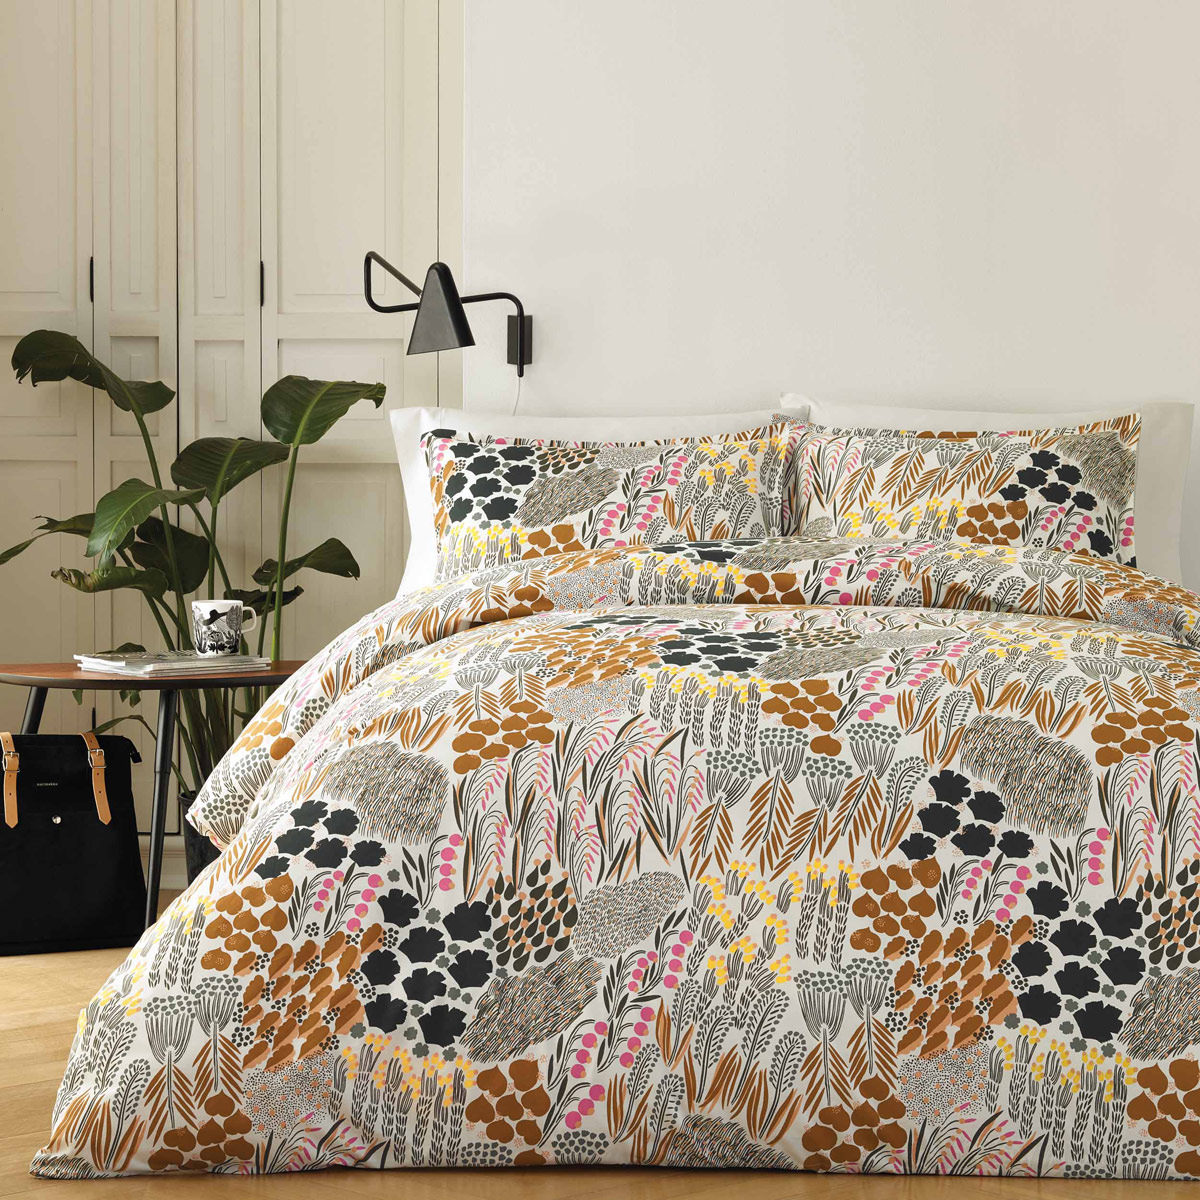 slater queen cover ruched pbteen full kelly duvet o tide sweetgalas white anic sham organic